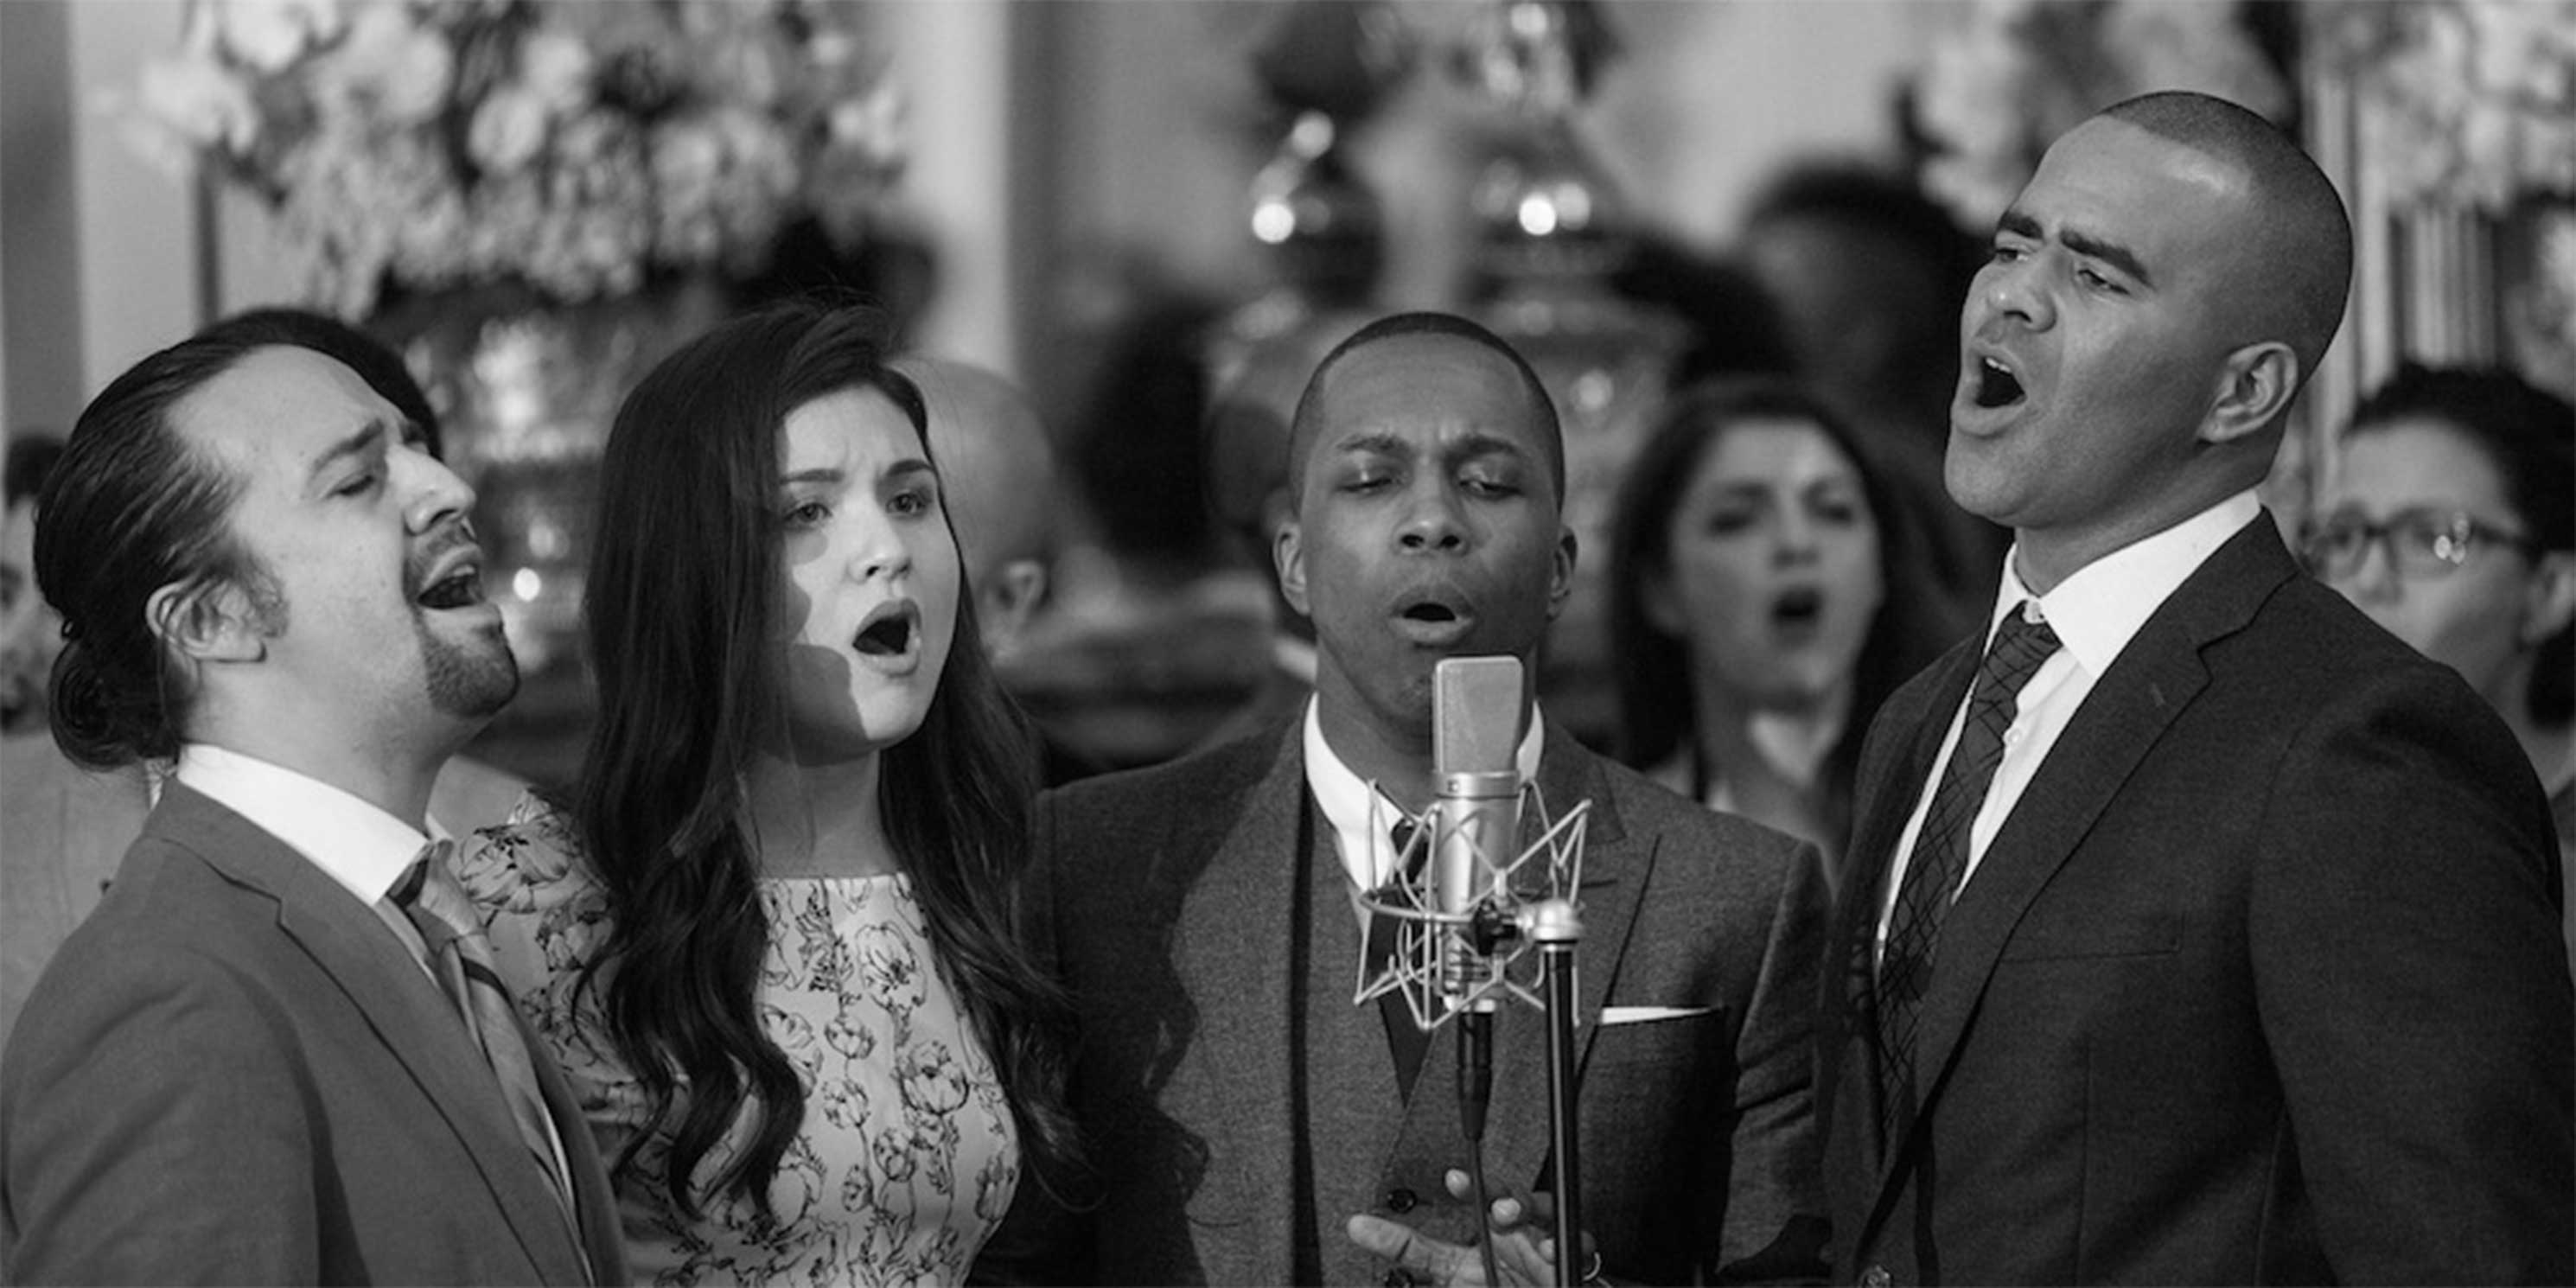 Hamilton cast members perform musical selections at the White House, 2016. L-R: Lin-Manuel Miranda, Phillipa Soo, Leslie Odom, Jr., and Christopher Jackson. Photo: The White House, Amanda Lucidon.